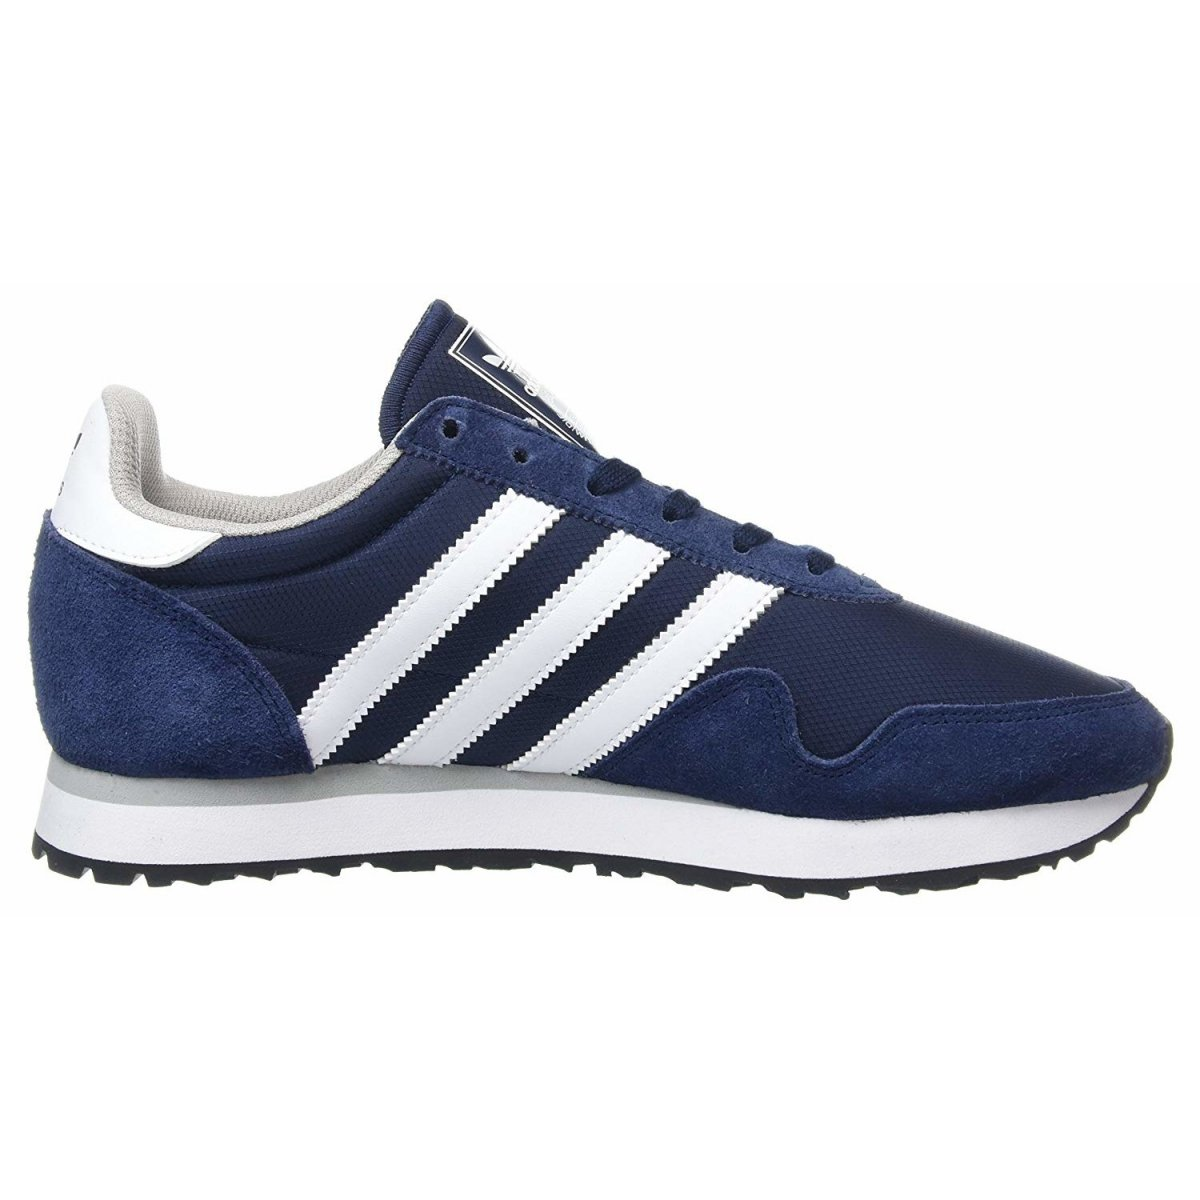 ADIDAS ORIGINALS BUTY MĘSKIE HAVEN BB1280